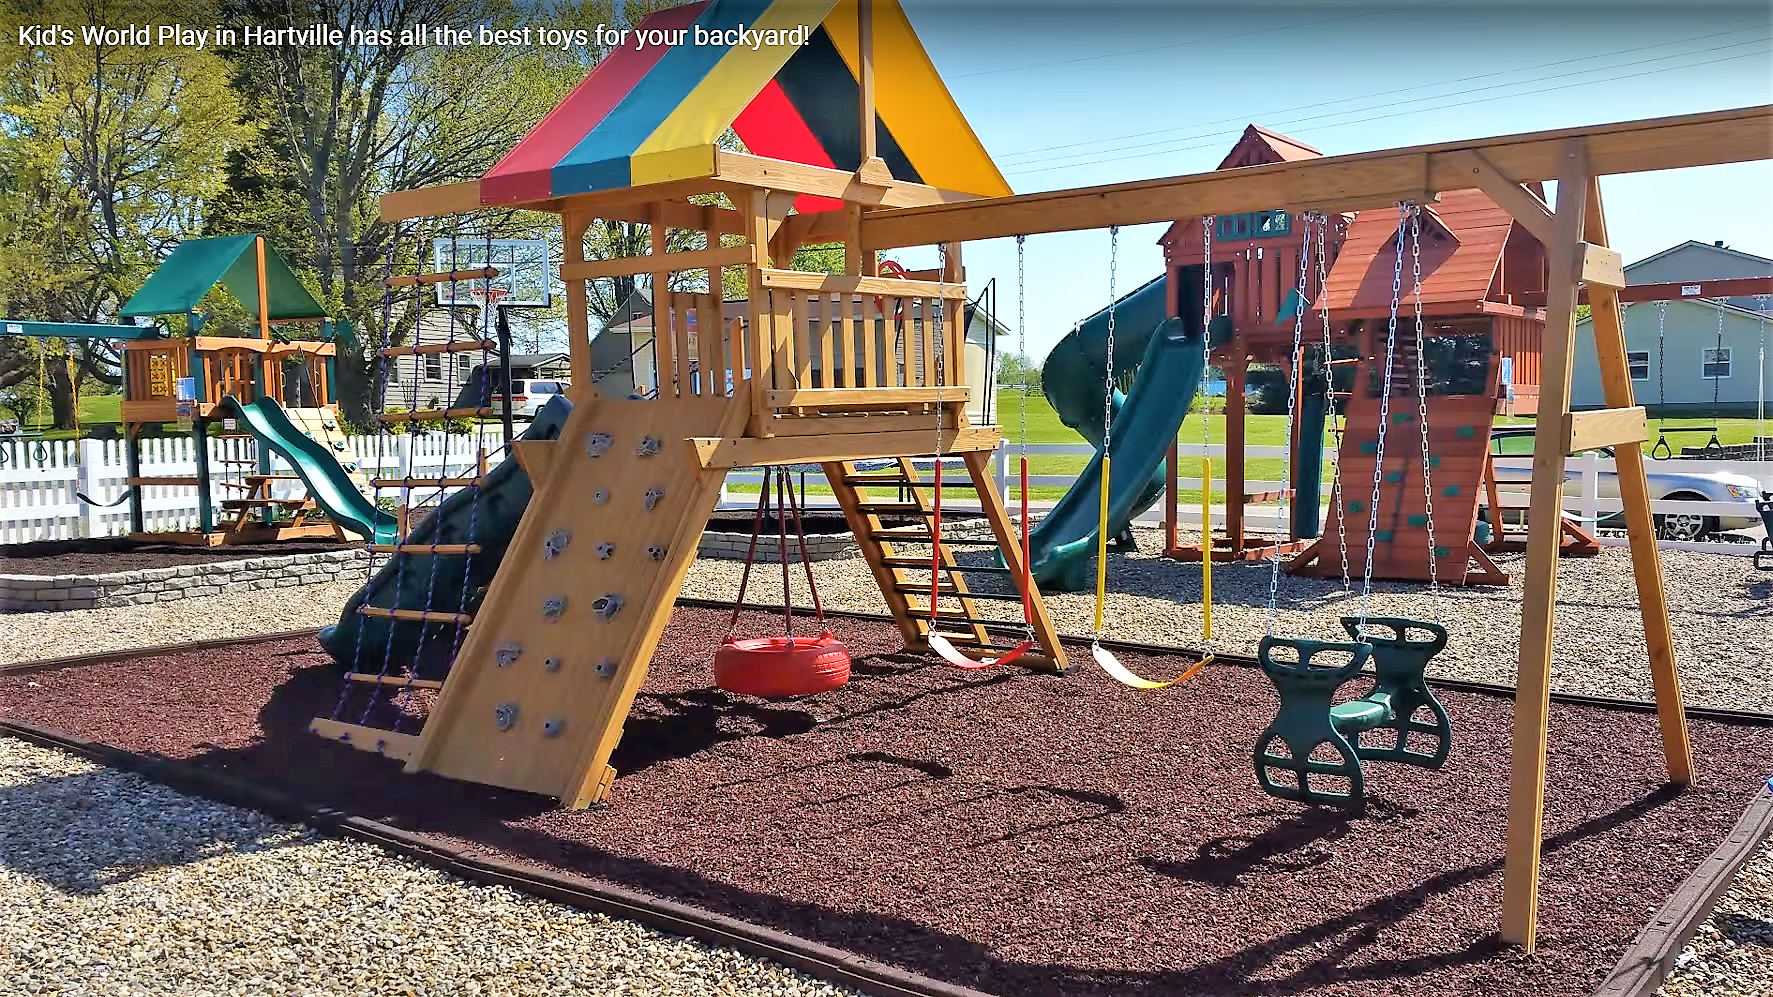 Kids World Play Systems image 1